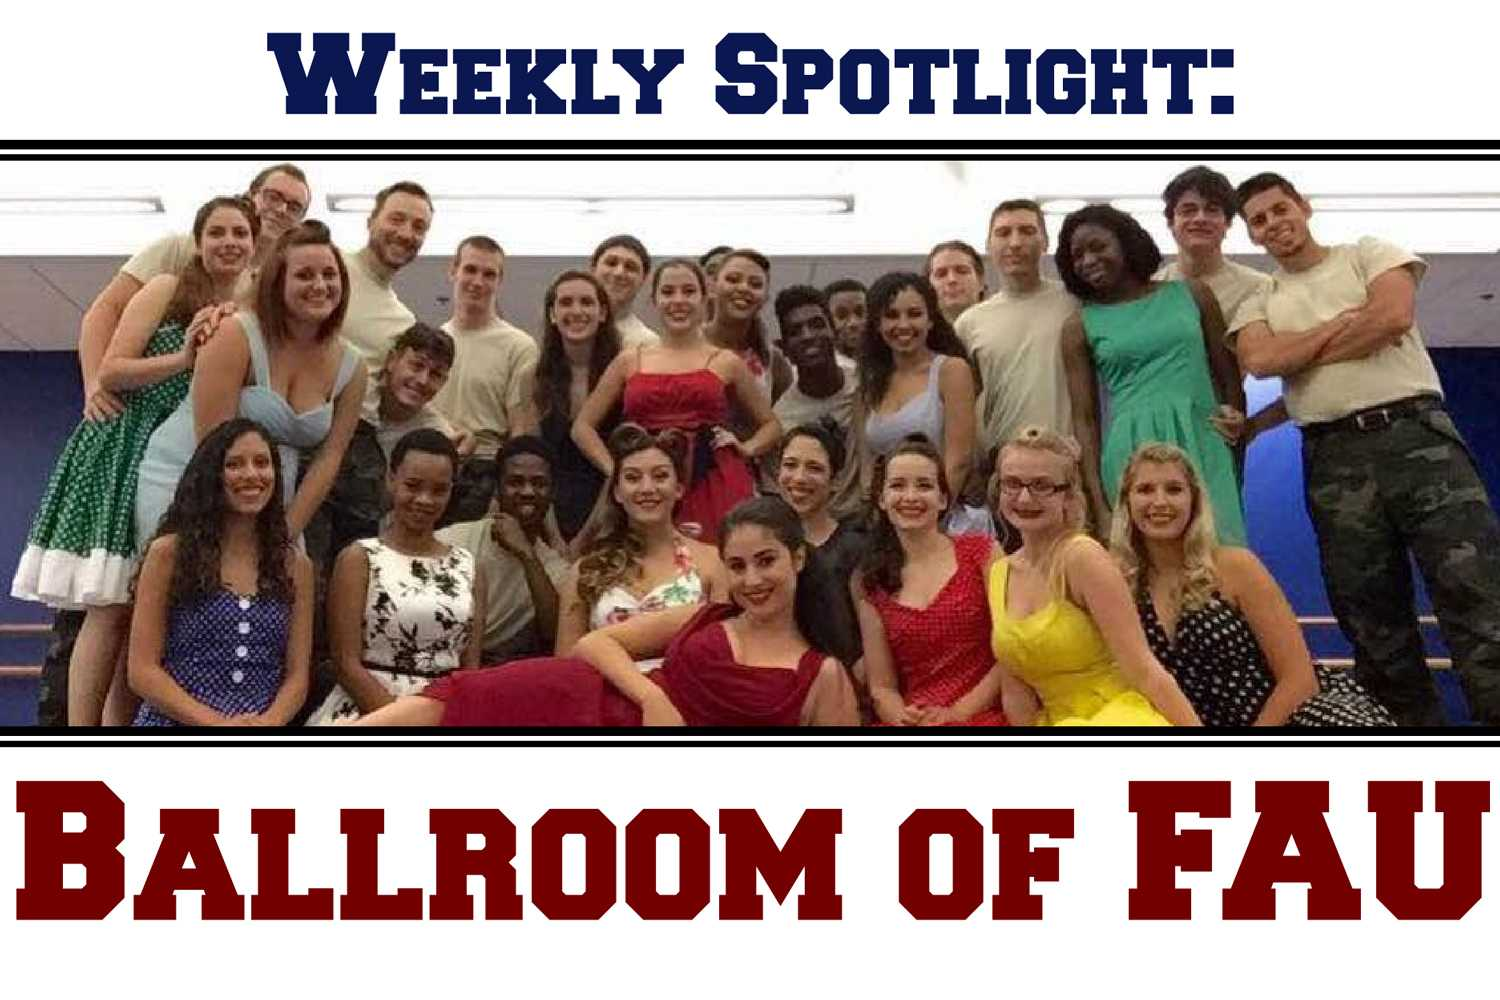 Ballroom of FAU teaches ballroom and Latin dancing, and performs in competitions each semester. Photo courtesy of Lisa Lupo, club president.